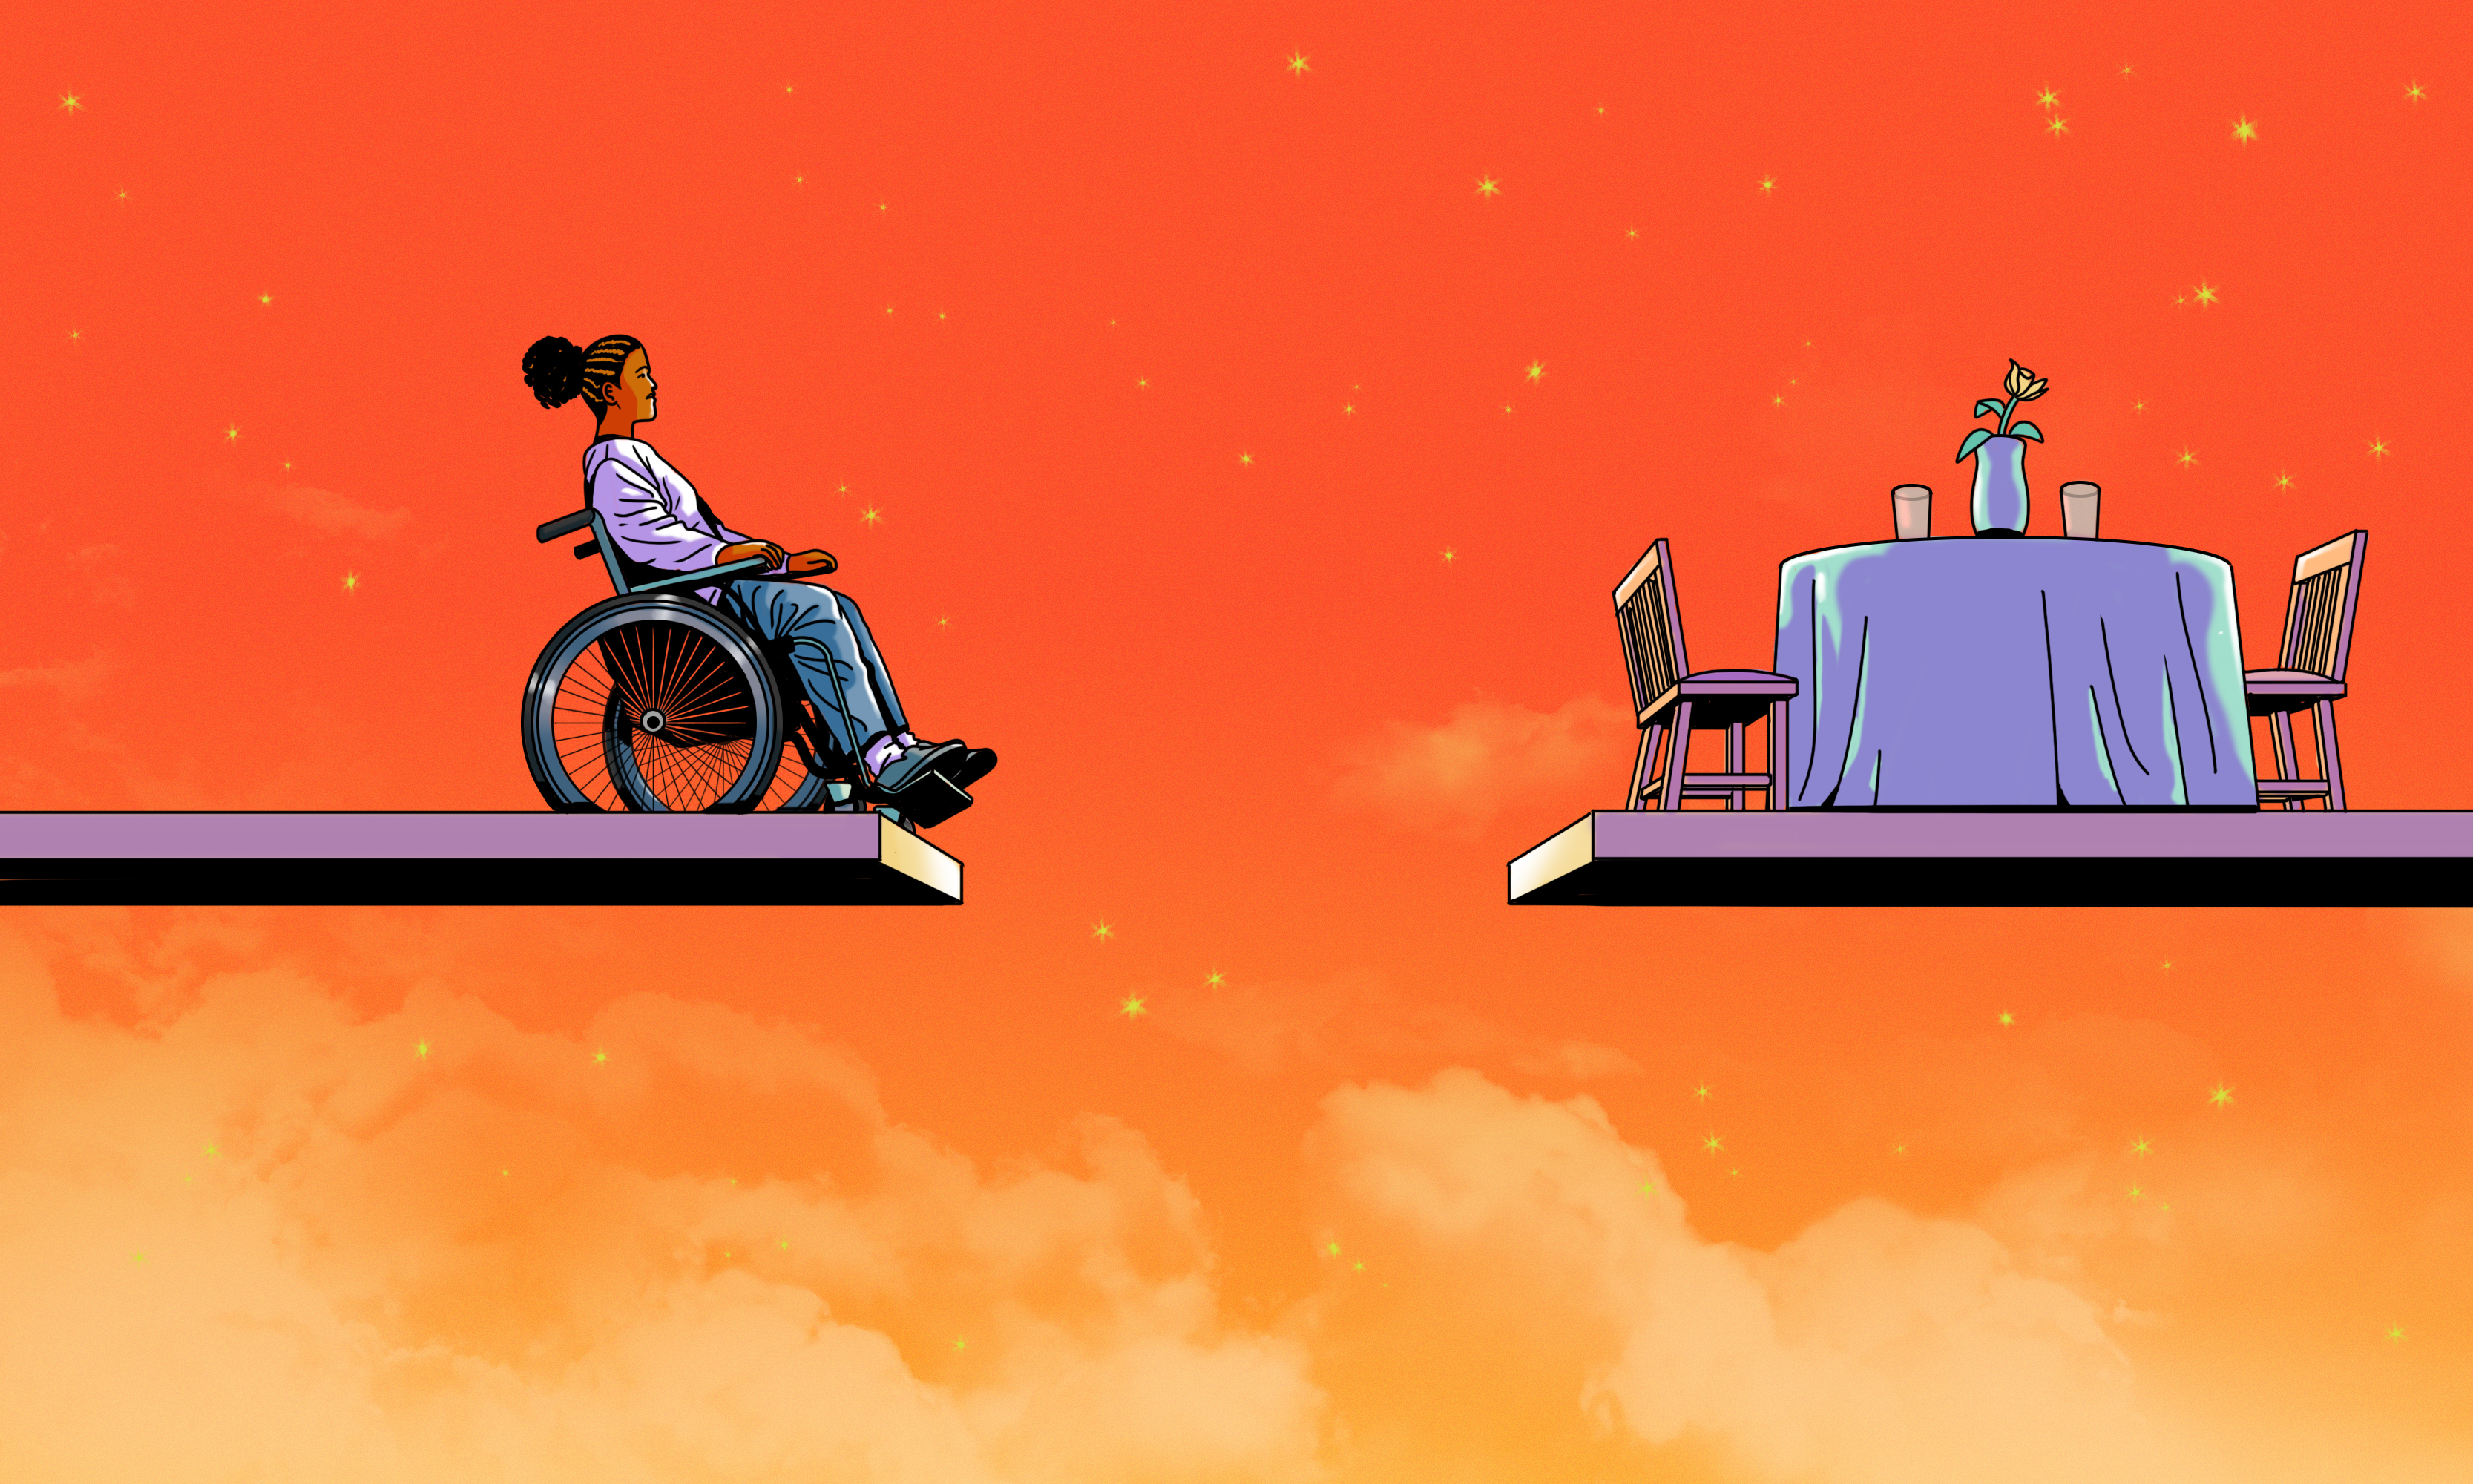 An illustration of a woman in a wheelchair sitting at the end of a high platform. Across from her is another platform holding a dining table and two chairs. The two platforms are divided by a big gap that the woman can't cross. The background is an orange sky with clouds and stars.